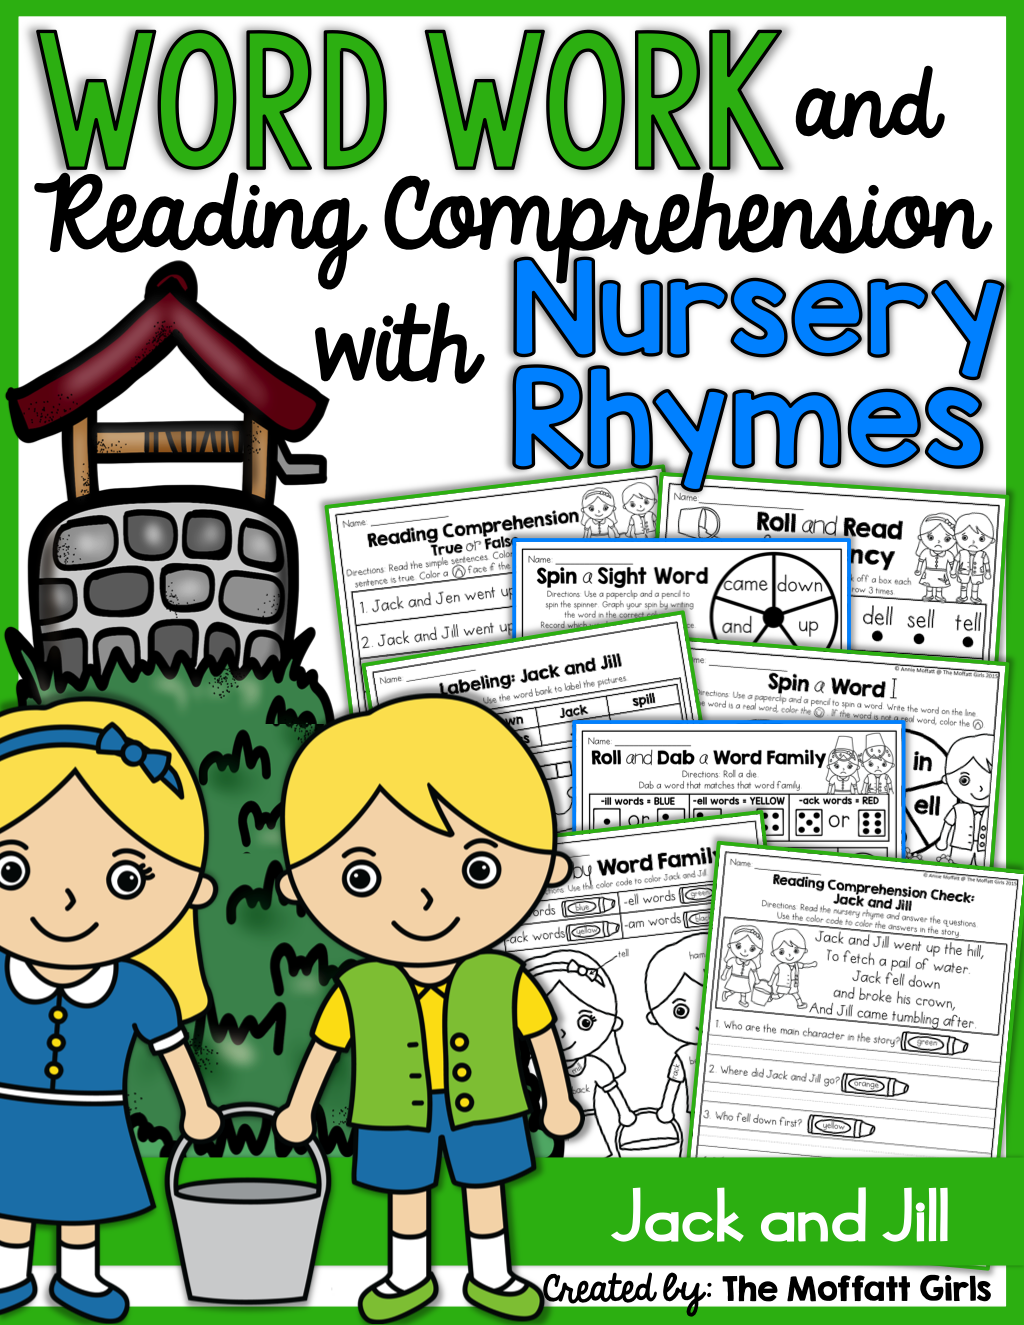 Teaching Word Work And Reading Comprehension Through